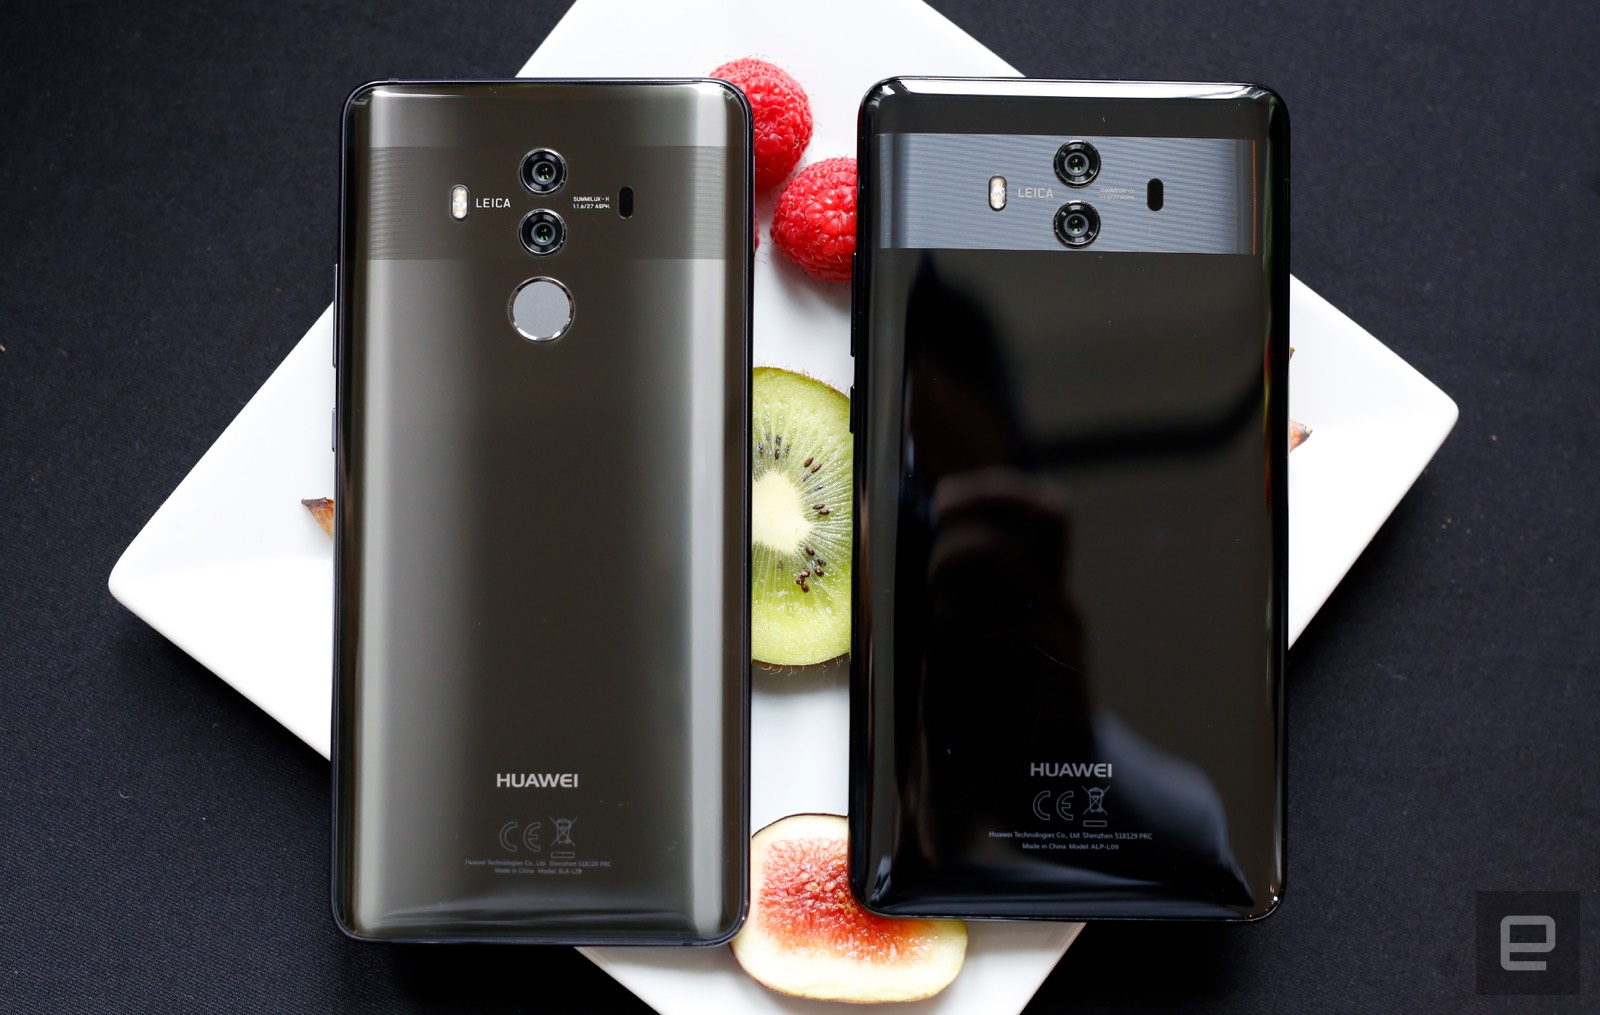 huawei mate 10 y mate 10 pro preview la inteligencia artificial empieza a cobrar sentido. Black Bedroom Furniture Sets. Home Design Ideas